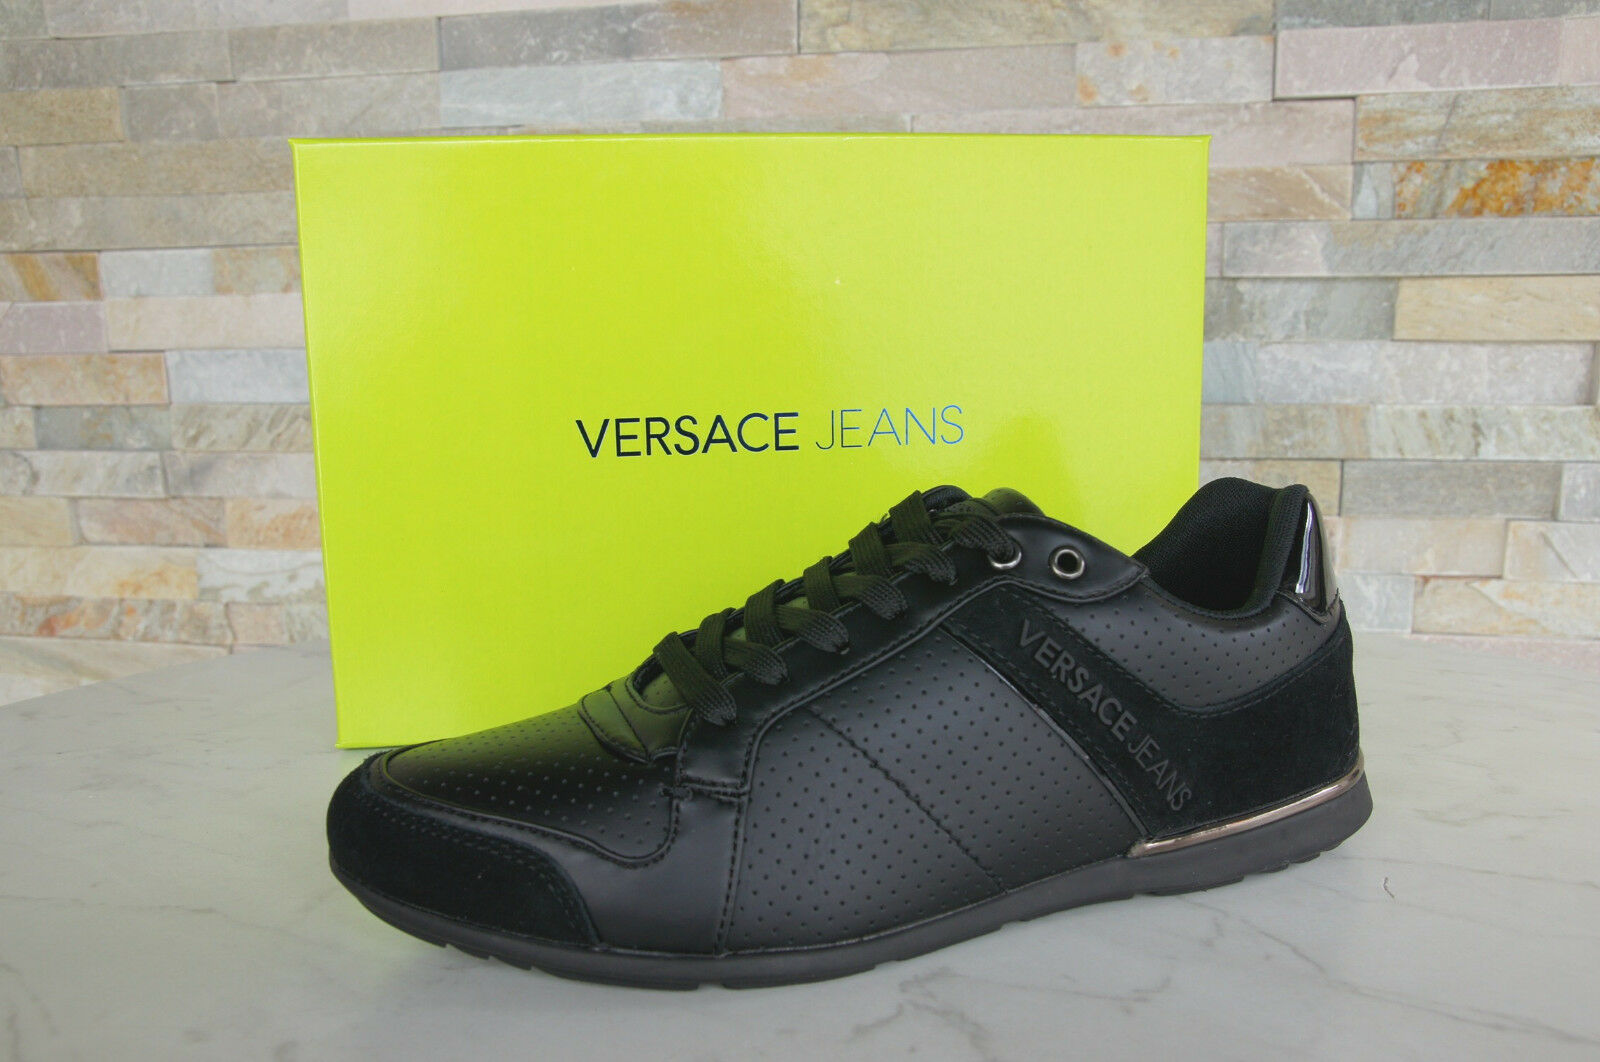 Versace Jeans Size 44 Sneakers Lace up shoes Black New Previously